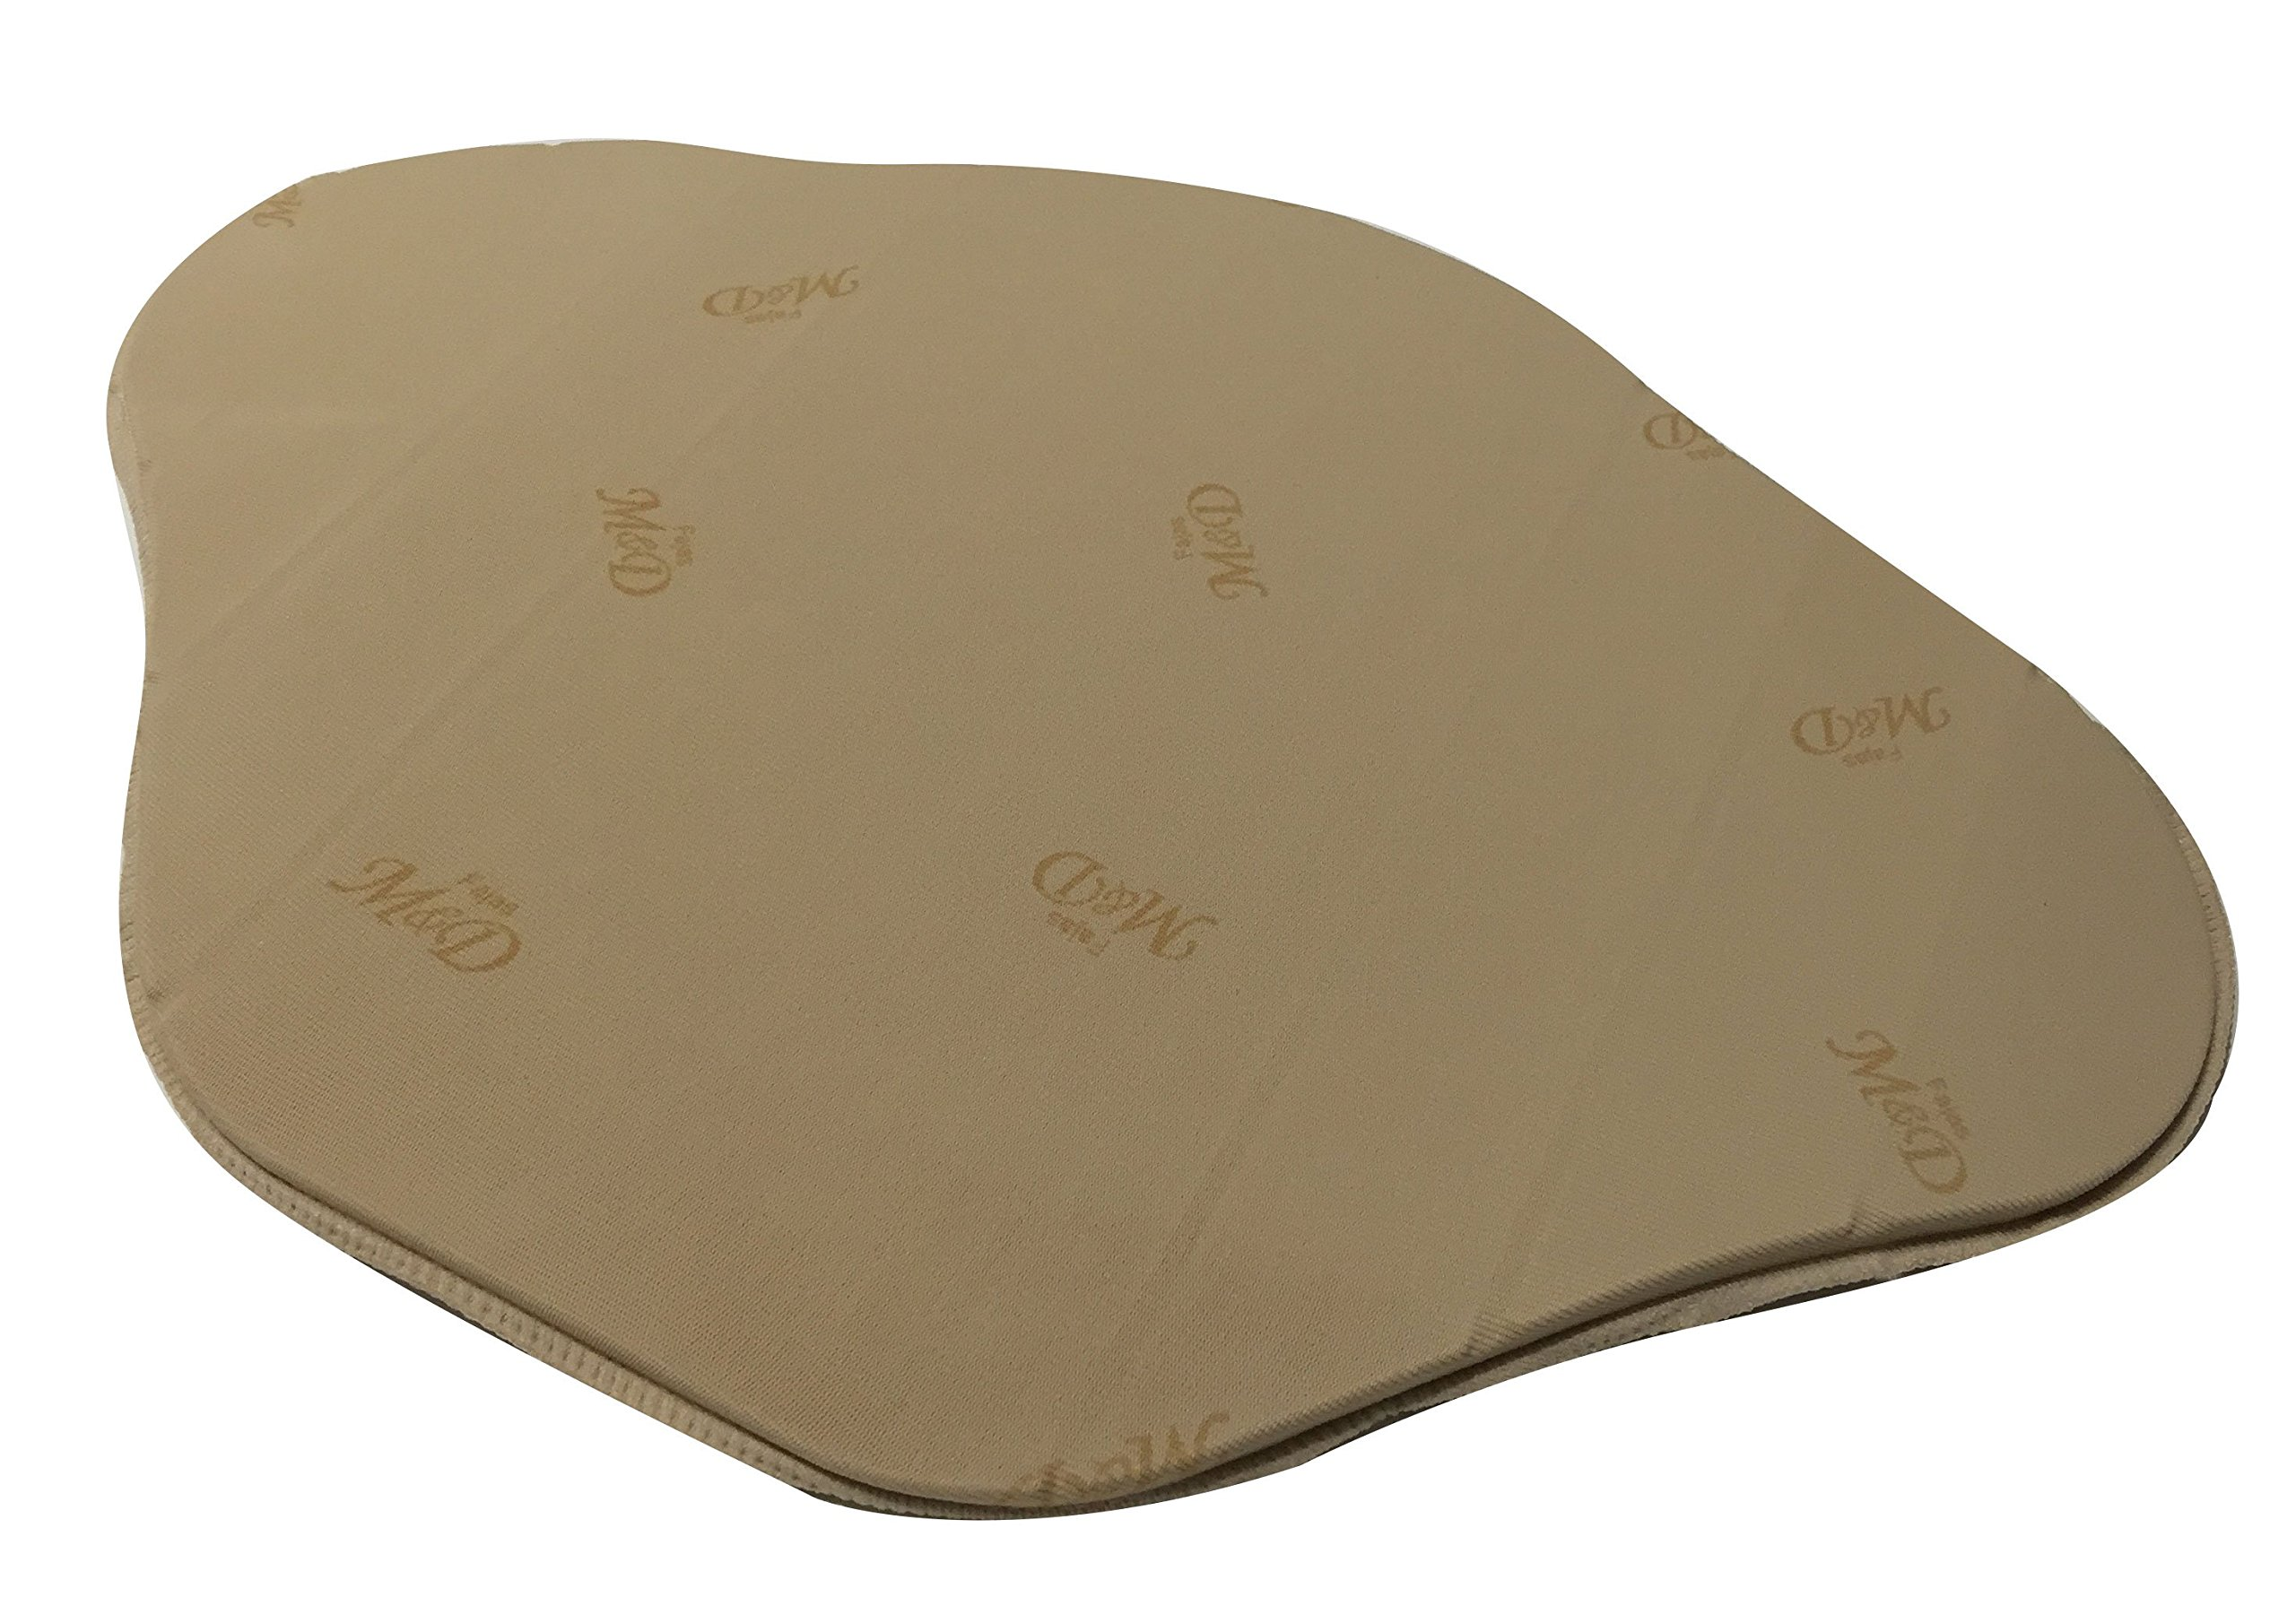 Fajas MyD MYD 0104 Tabla Abdominal Liposuction Board Liposuction Compression Garments